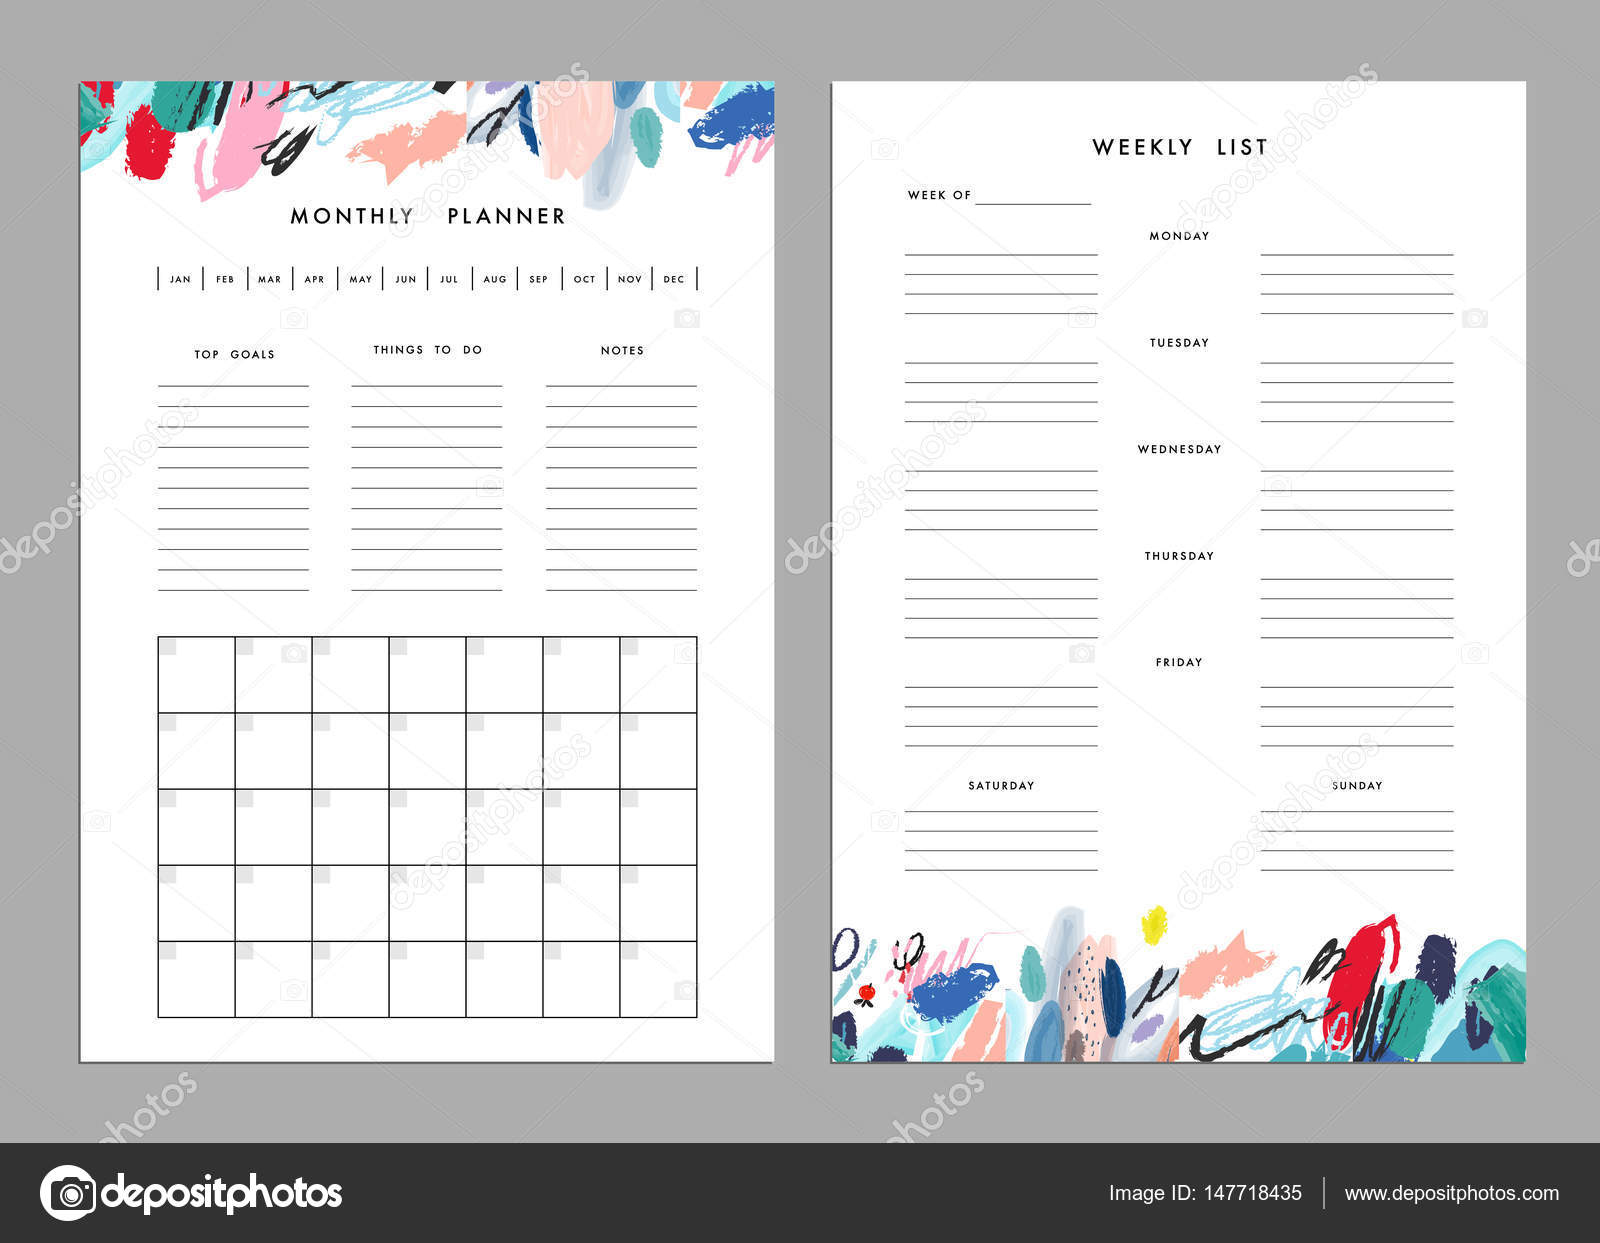 Weekly To Do List Template | Monthly Planner And Weekly List Templates Stock Vector C Leepoo